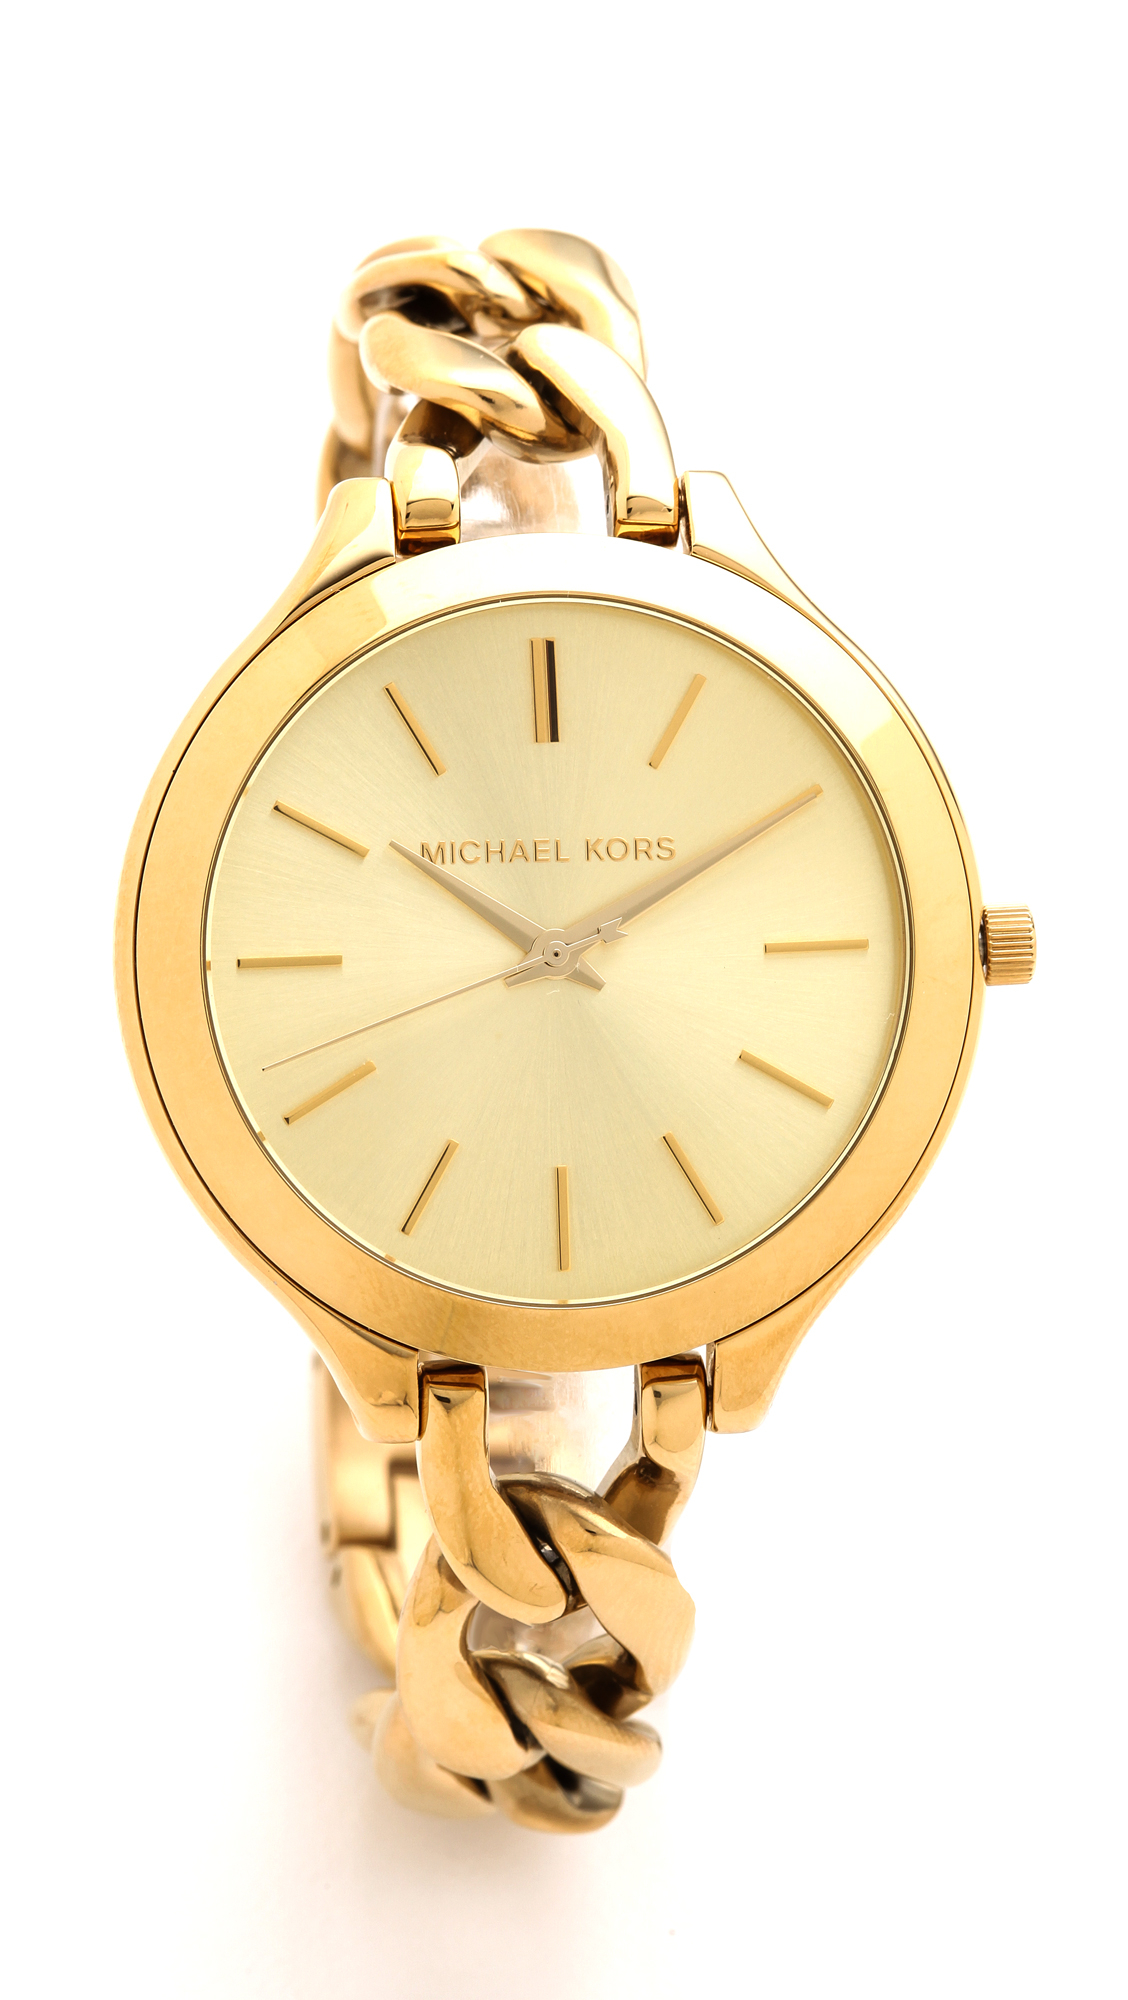 Michael kors slim runway twist watch gold in gold lyst for Watches michael kors